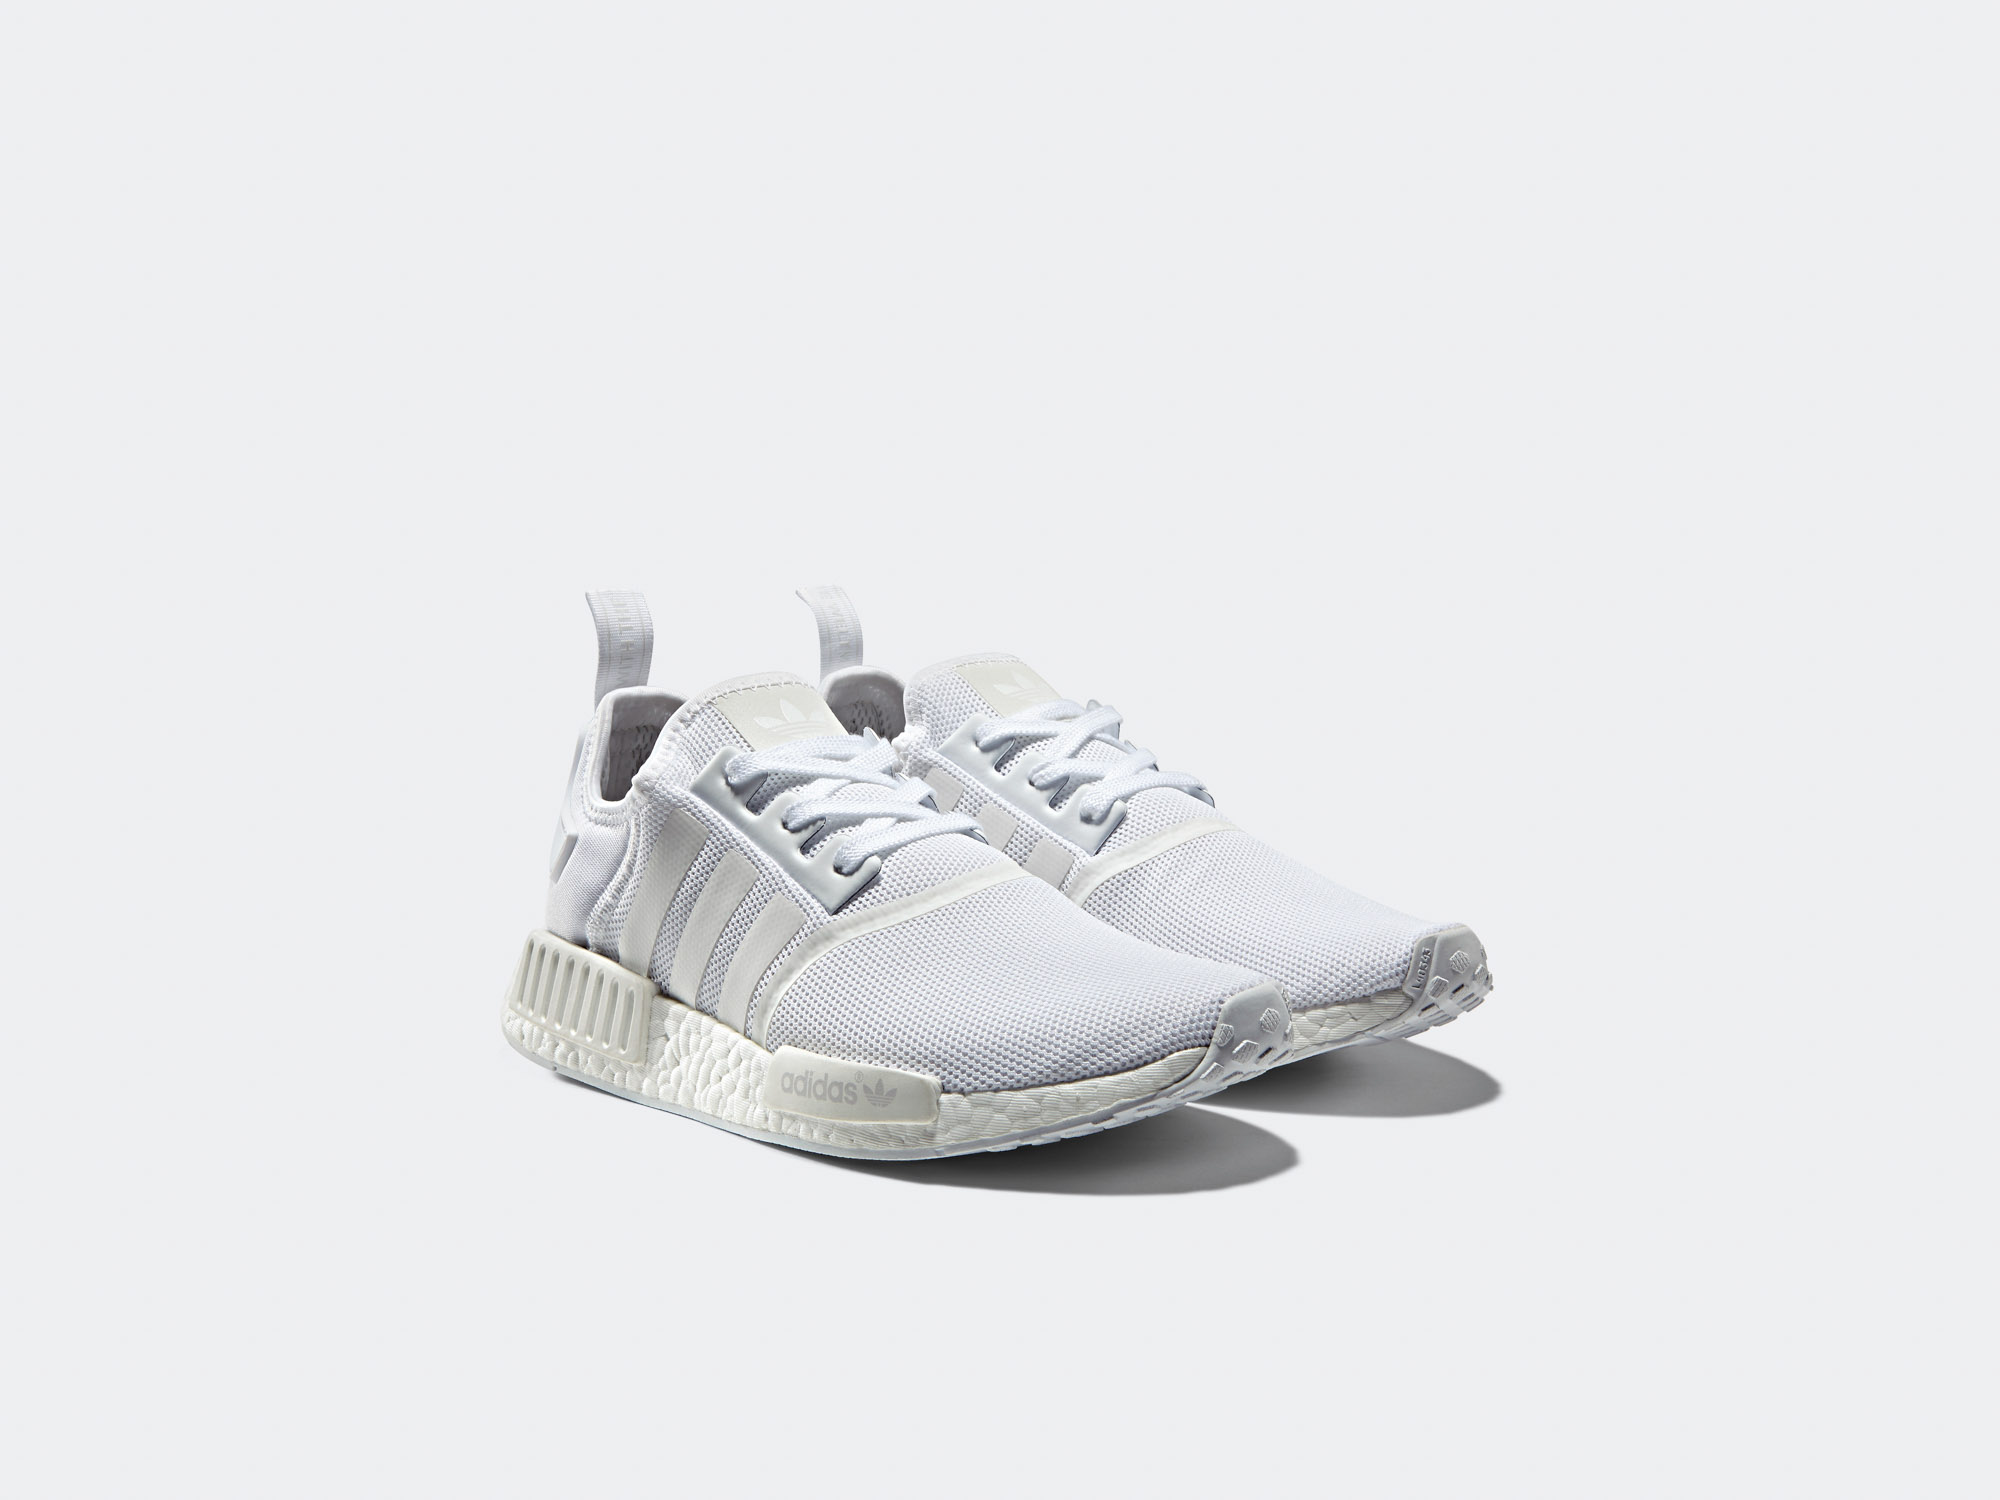 adidas NMD R1 Monochrome Pack 3